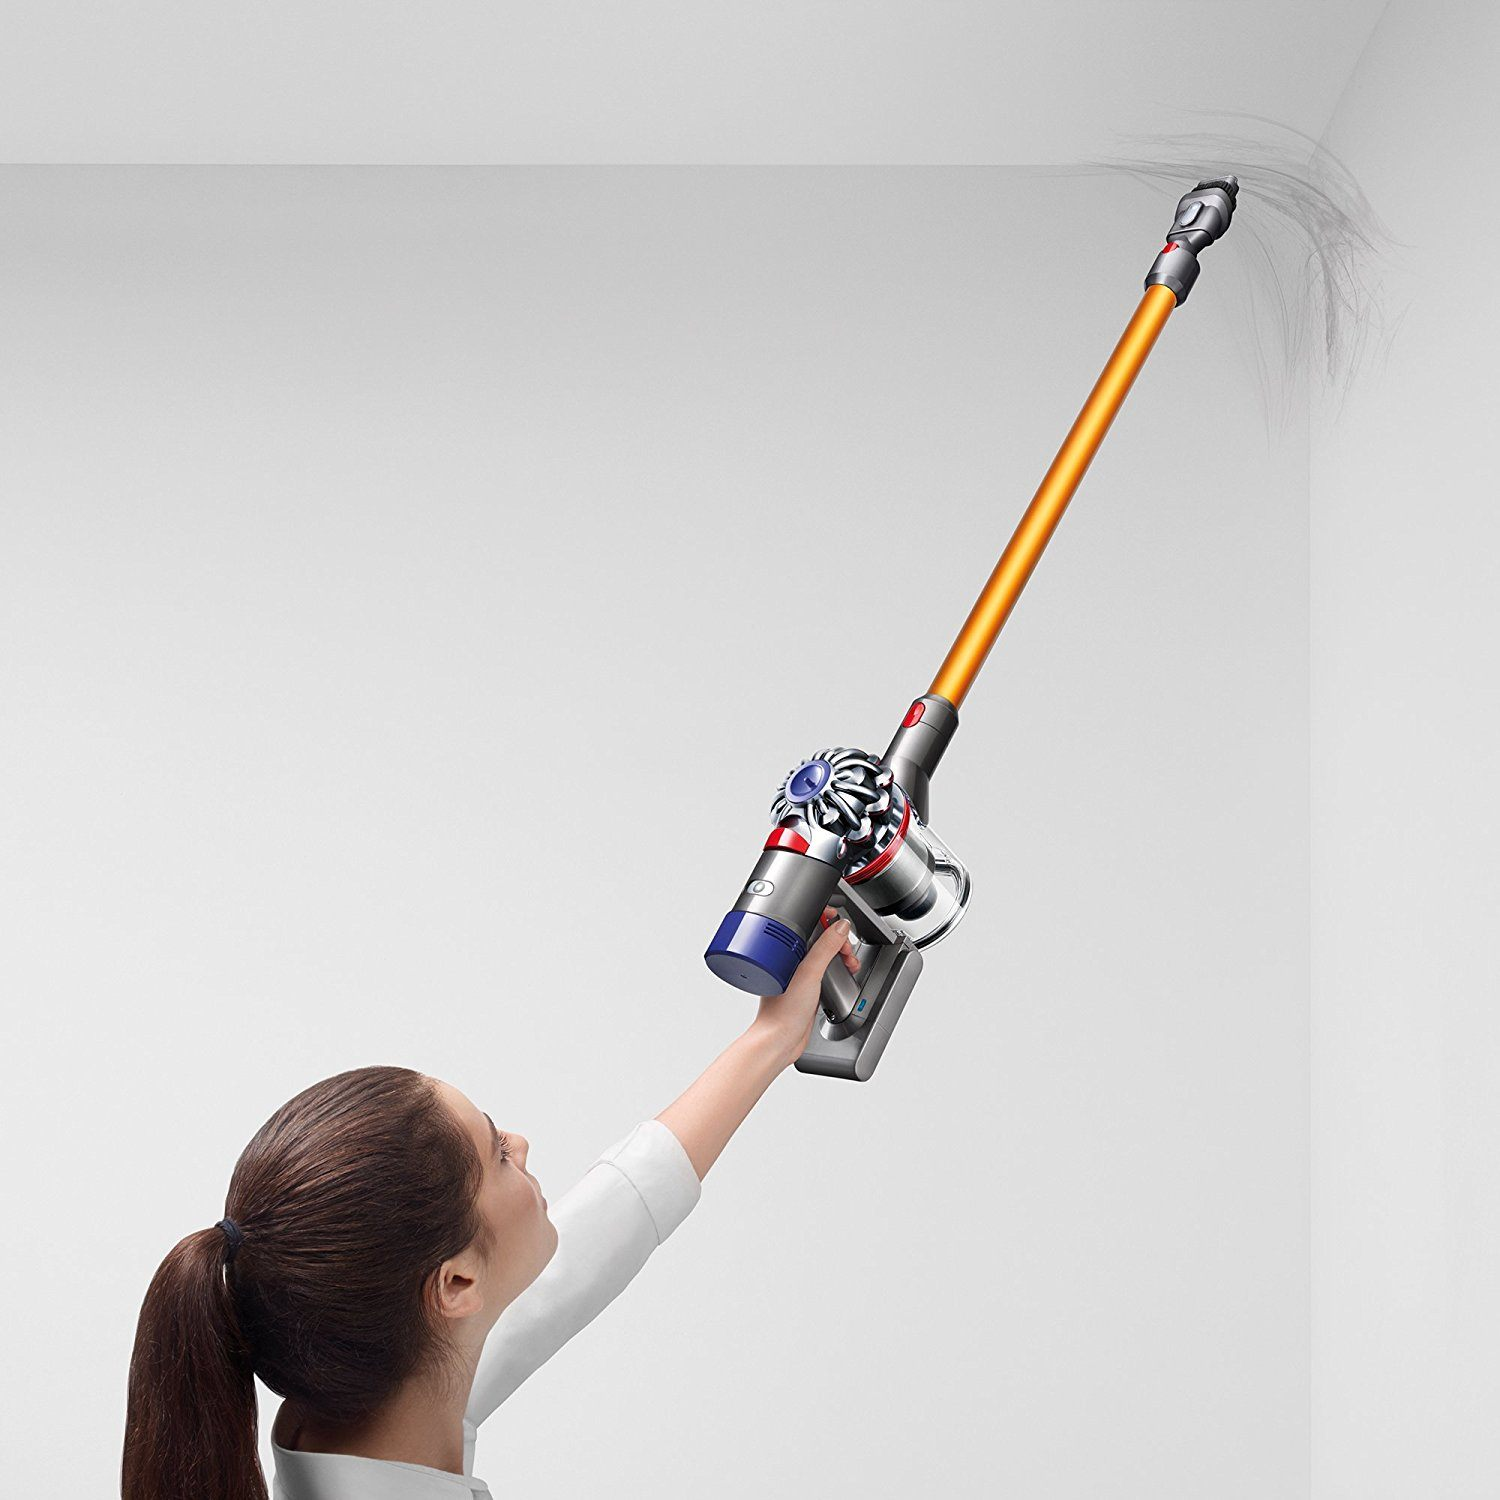 dyson v8 vacuum cleaner review